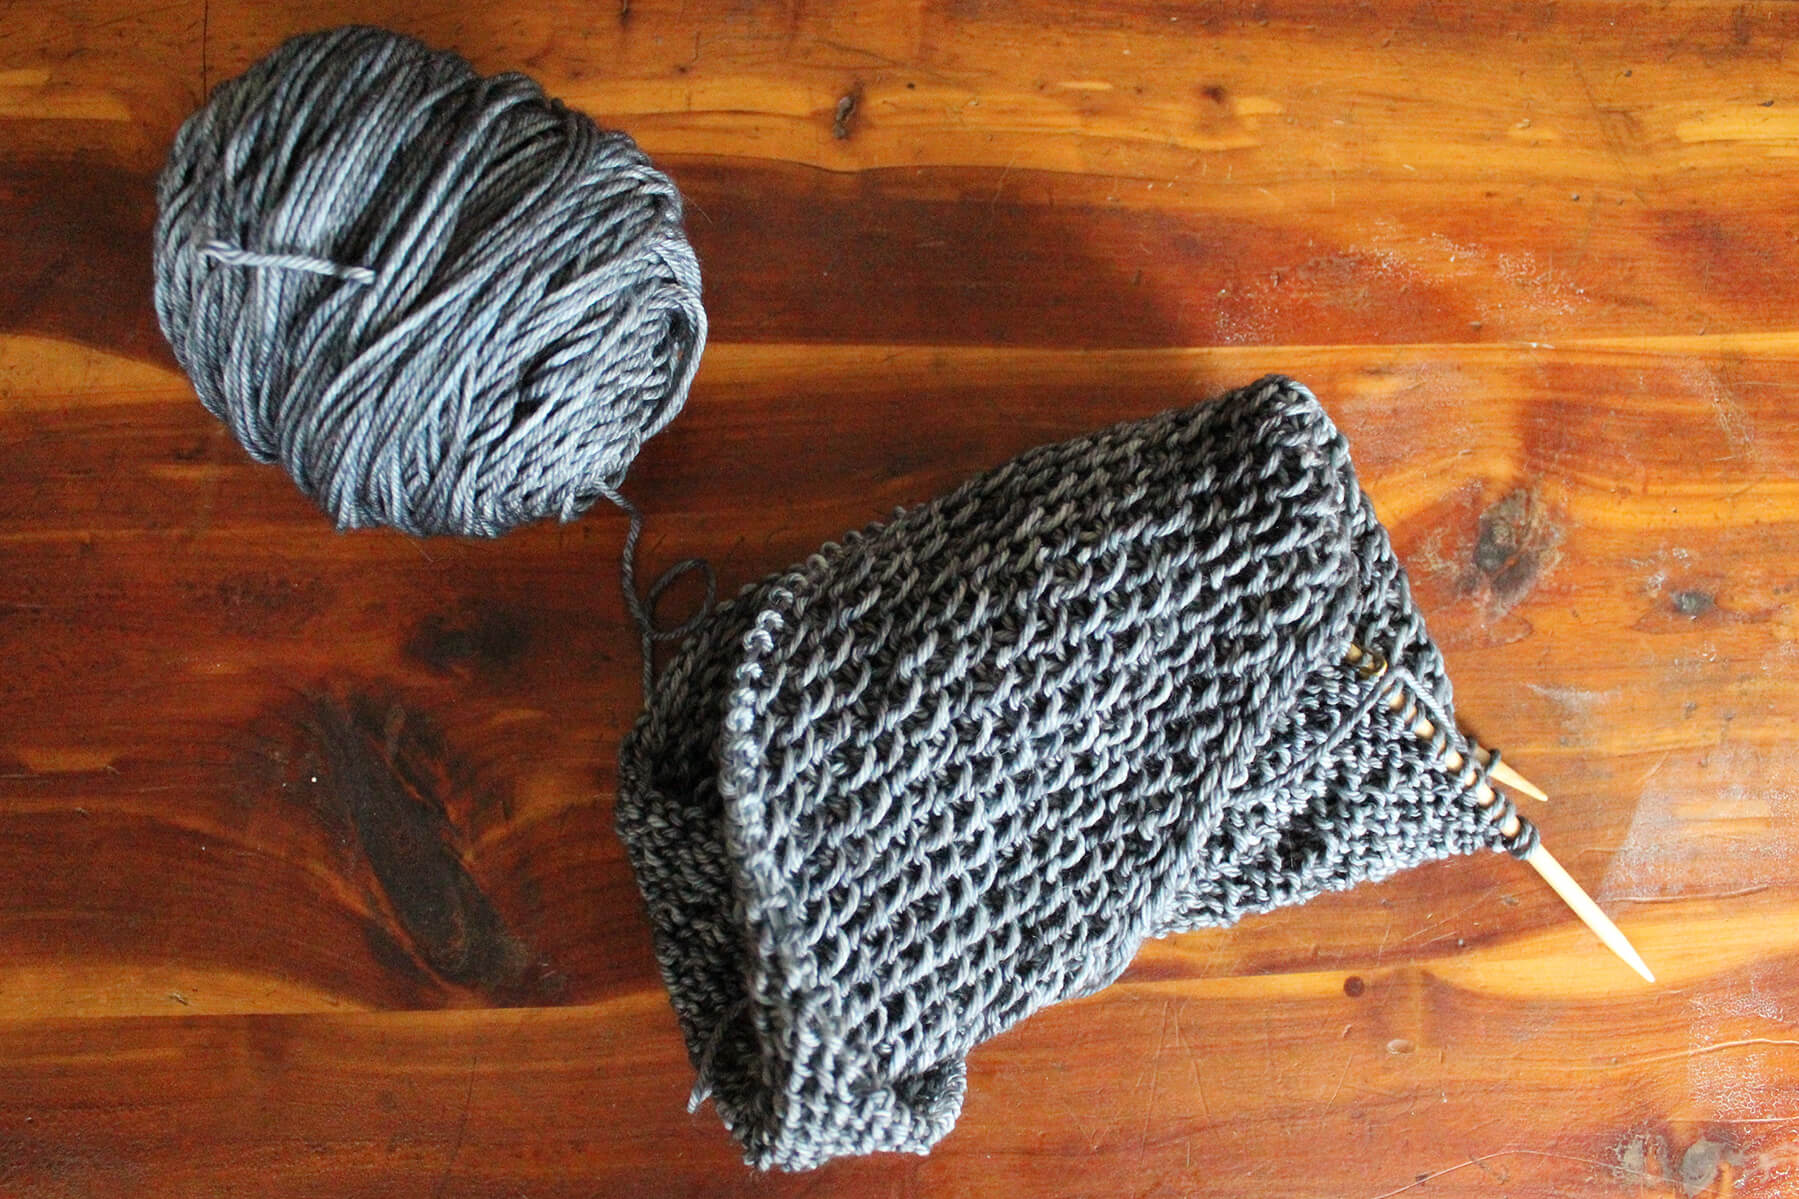 Currently making: the   Honey Cowl   from Madeline Tosh, using Tosh Merino DK.